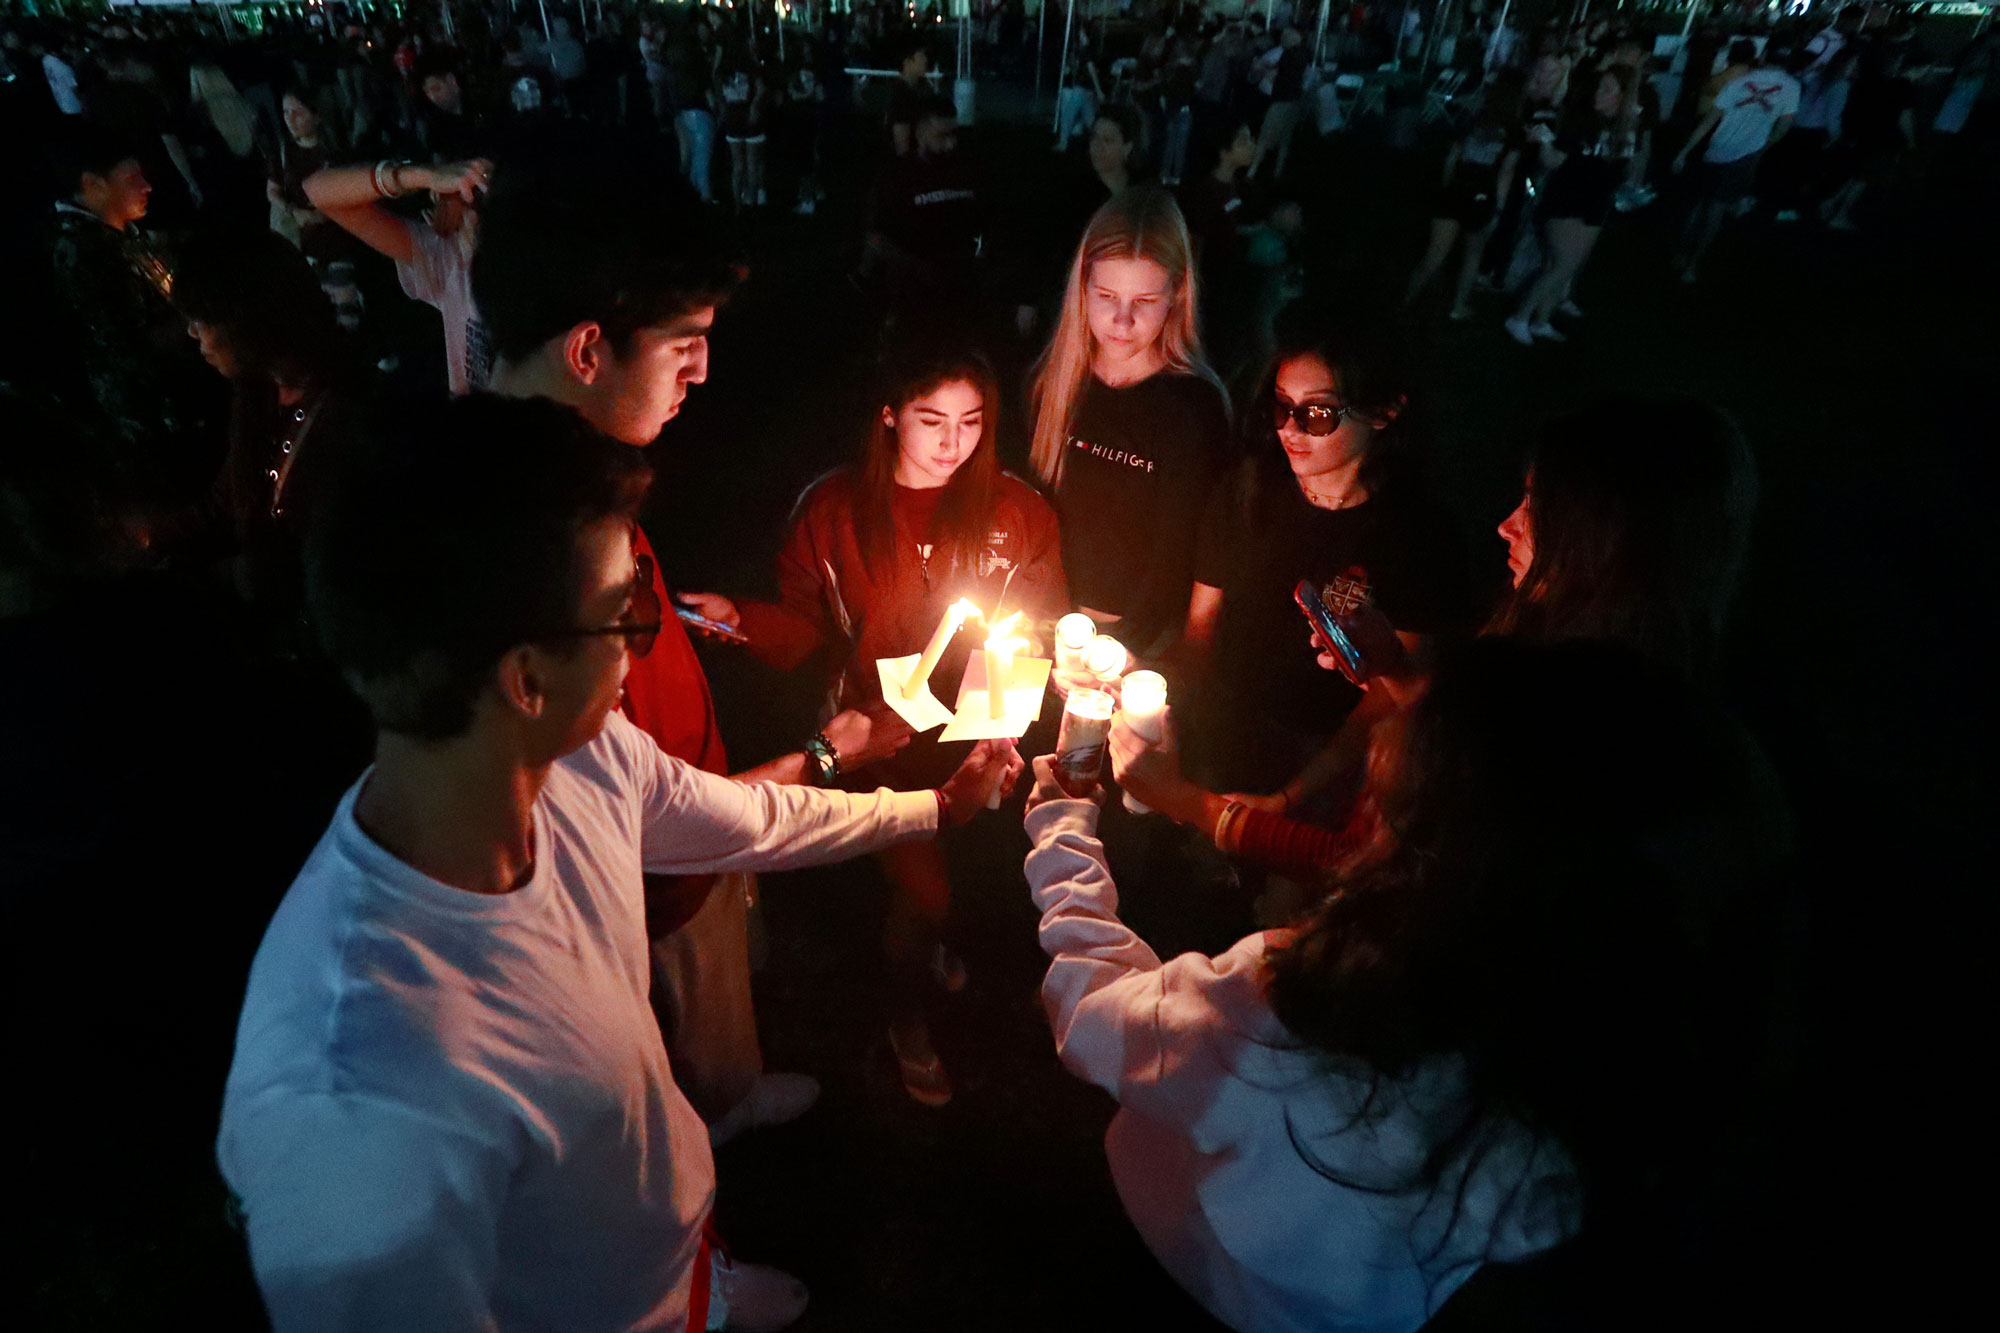 <p>Attendees during an interfaith service light candles, Thursday, Feb. 14, 2019, in Parkland, Fla.</p>